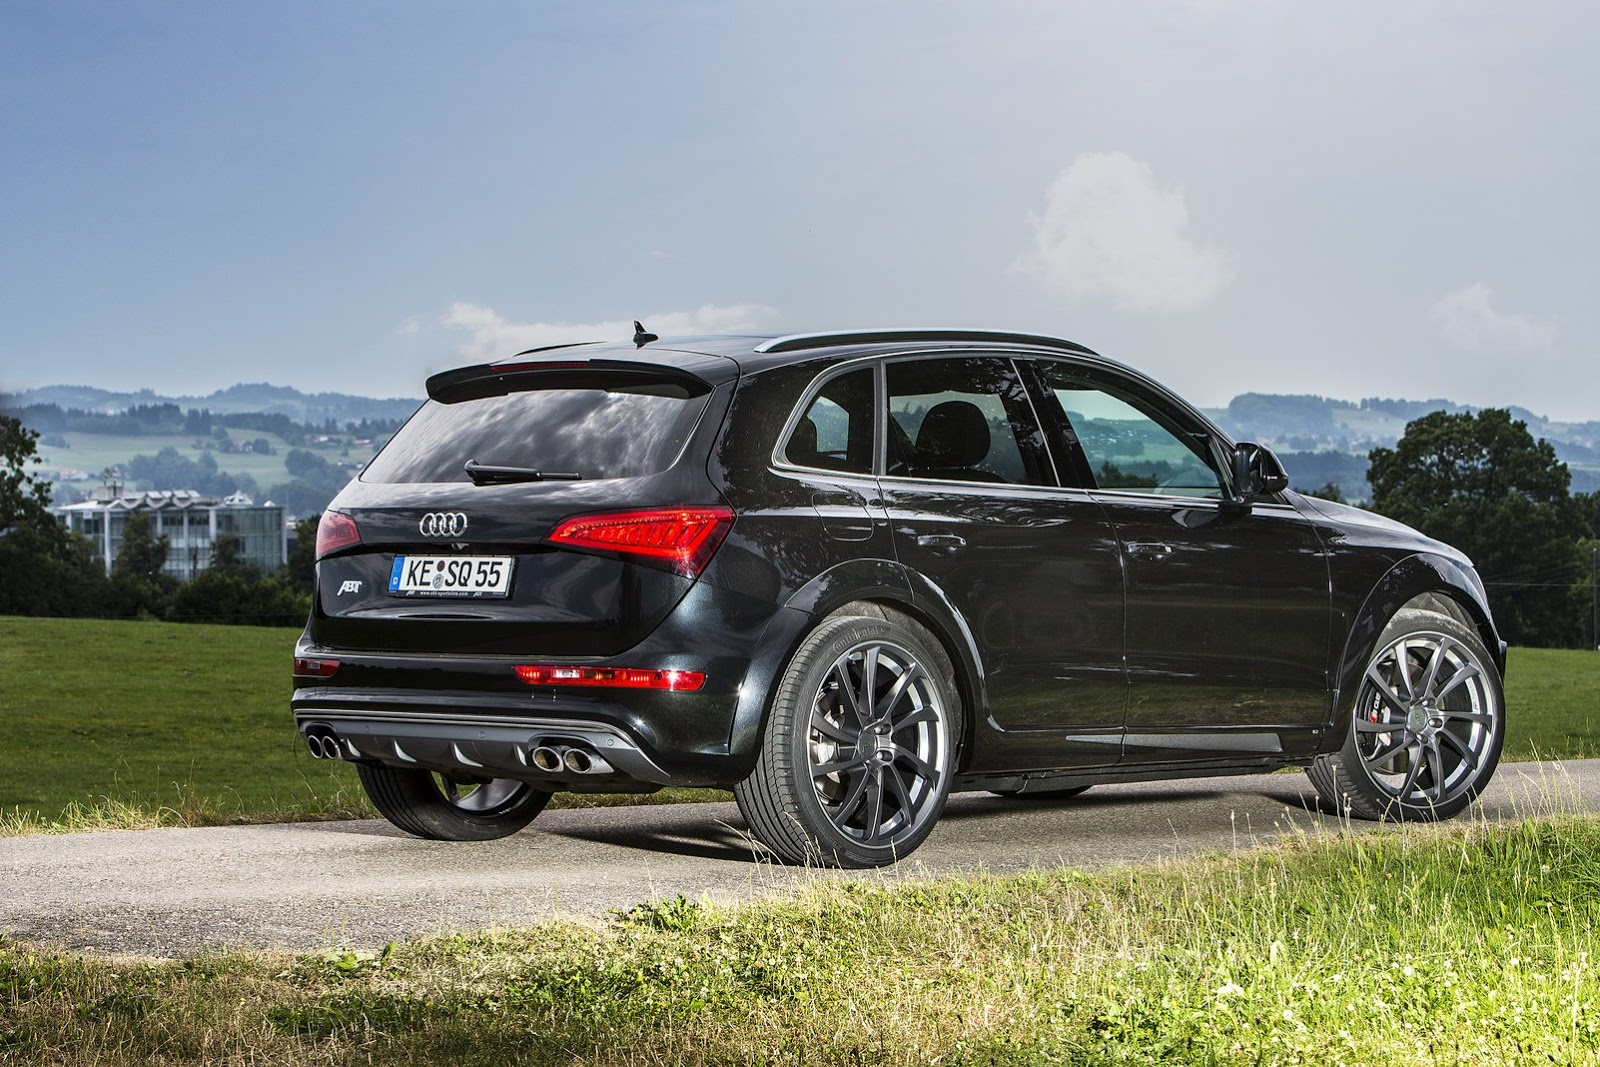 audi sq5 tdi proves faster than macan s diesel in drag race autoevolution. Black Bedroom Furniture Sets. Home Design Ideas